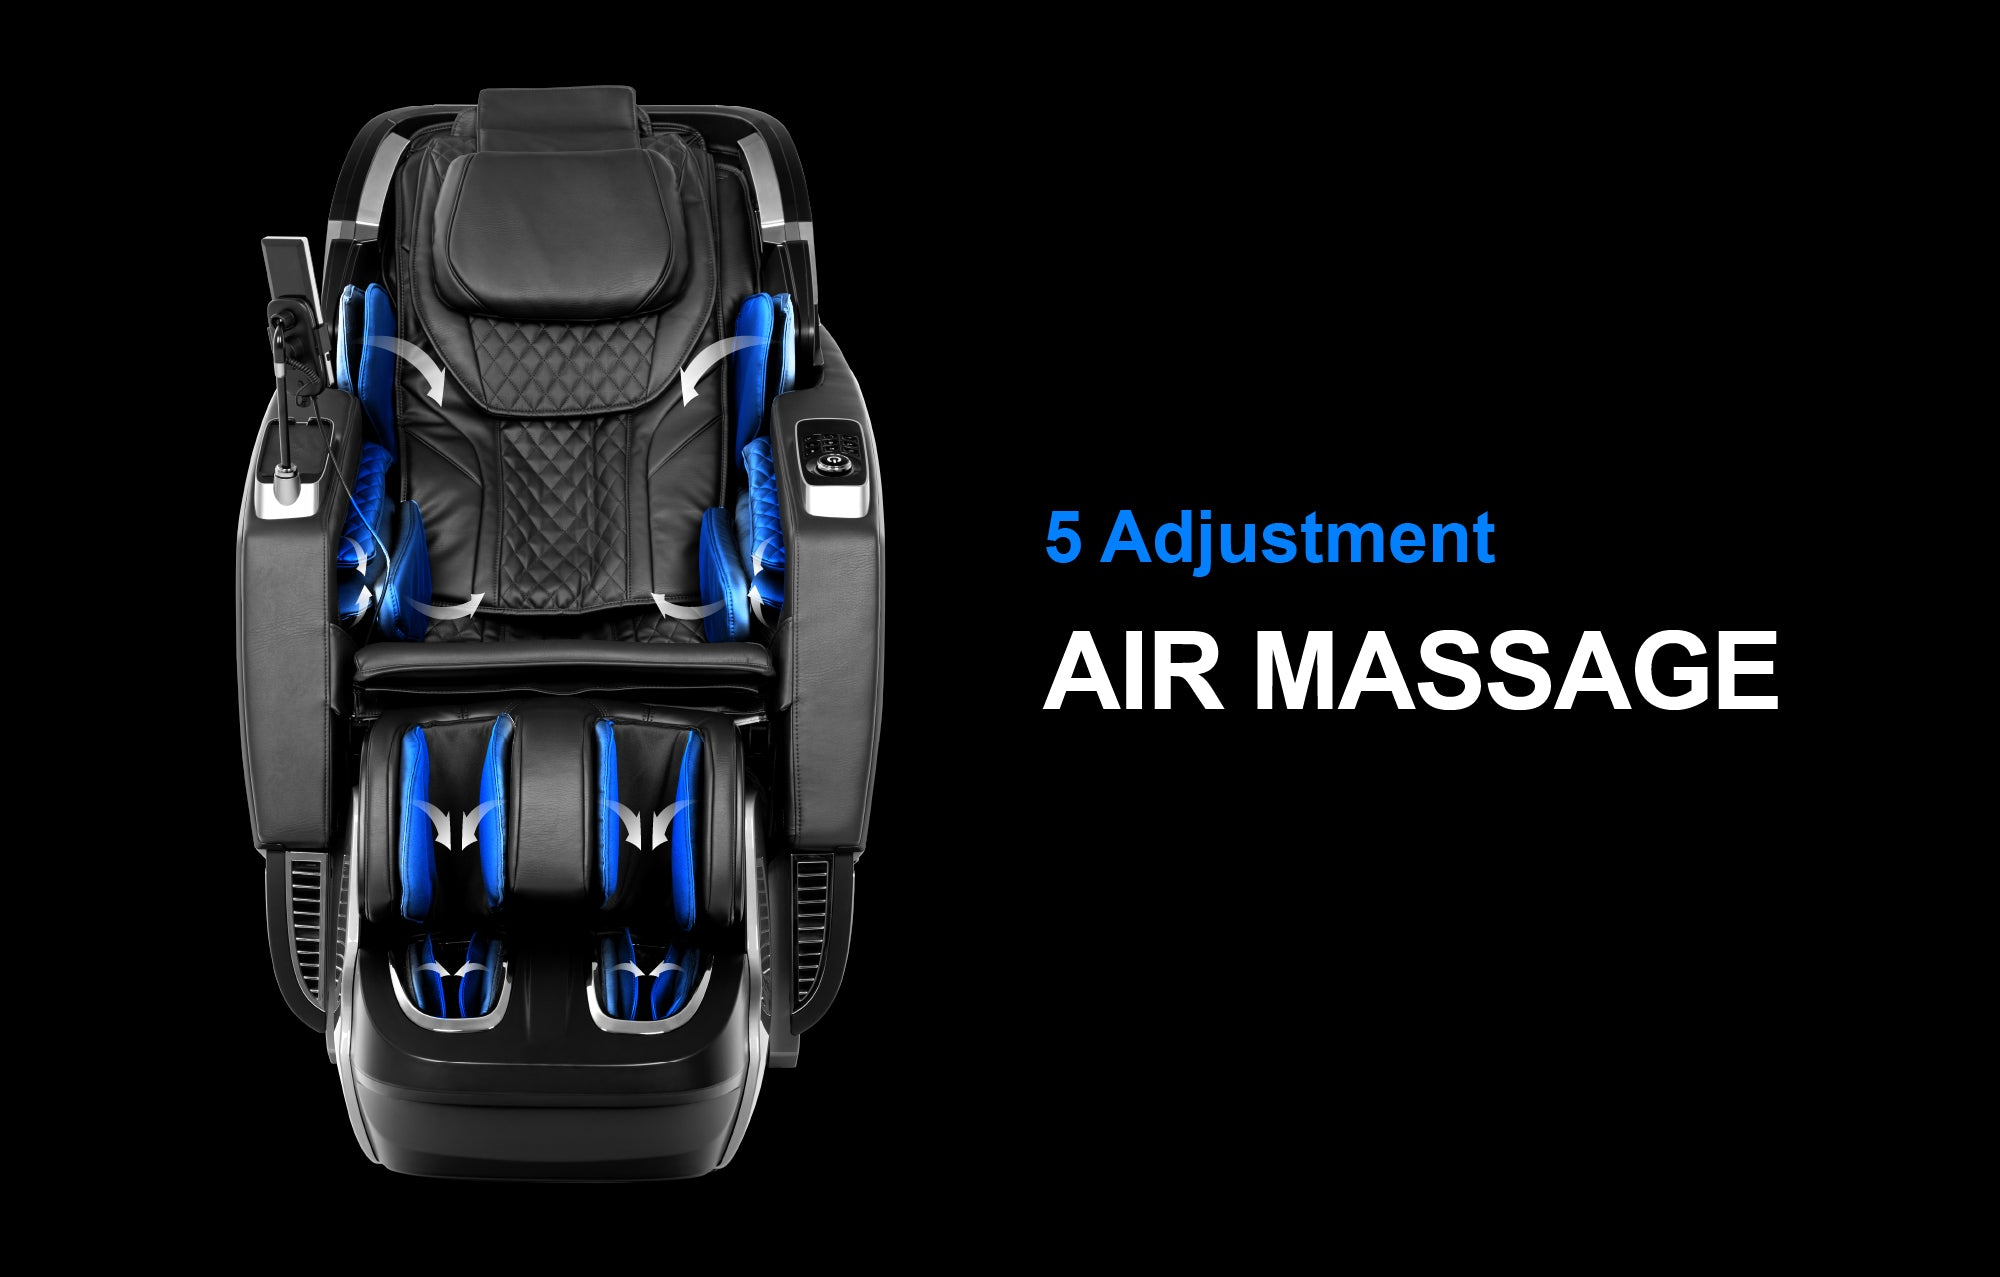 5 Adjustment Air Massage